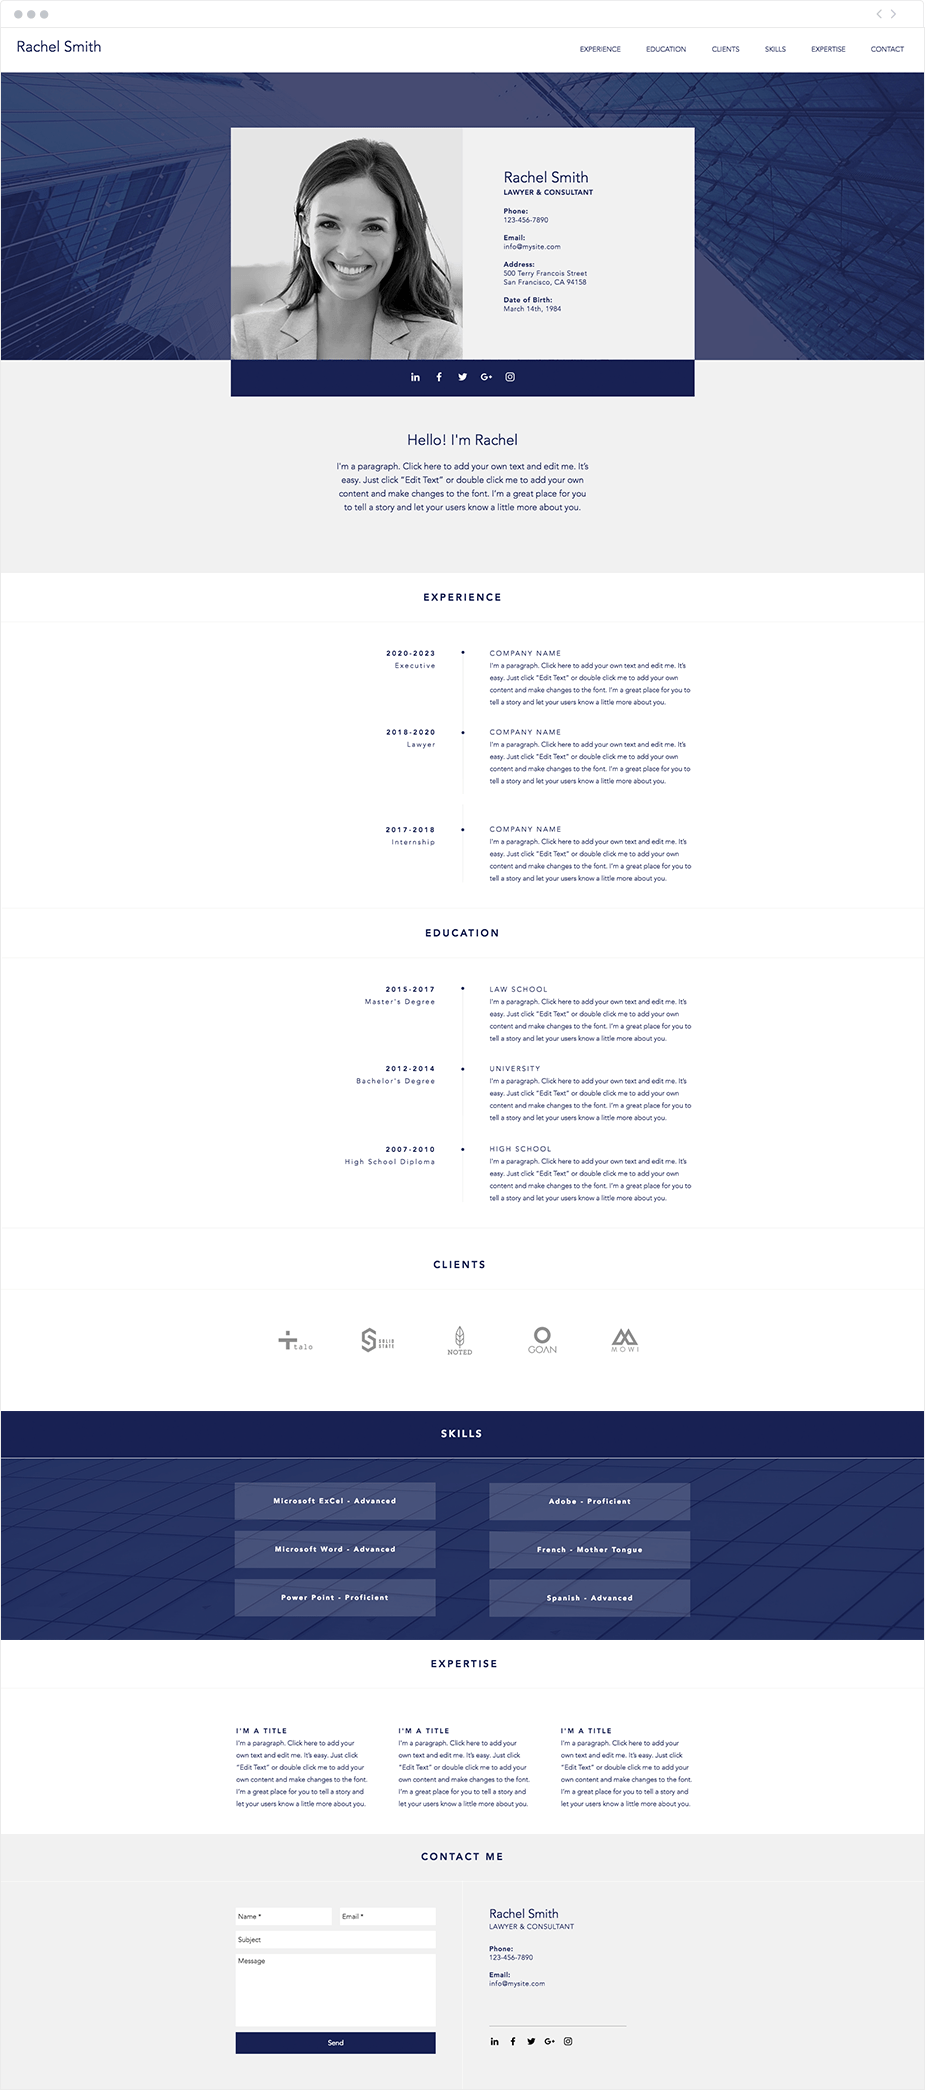 7 Polished Resume Website Templates For All Professionals